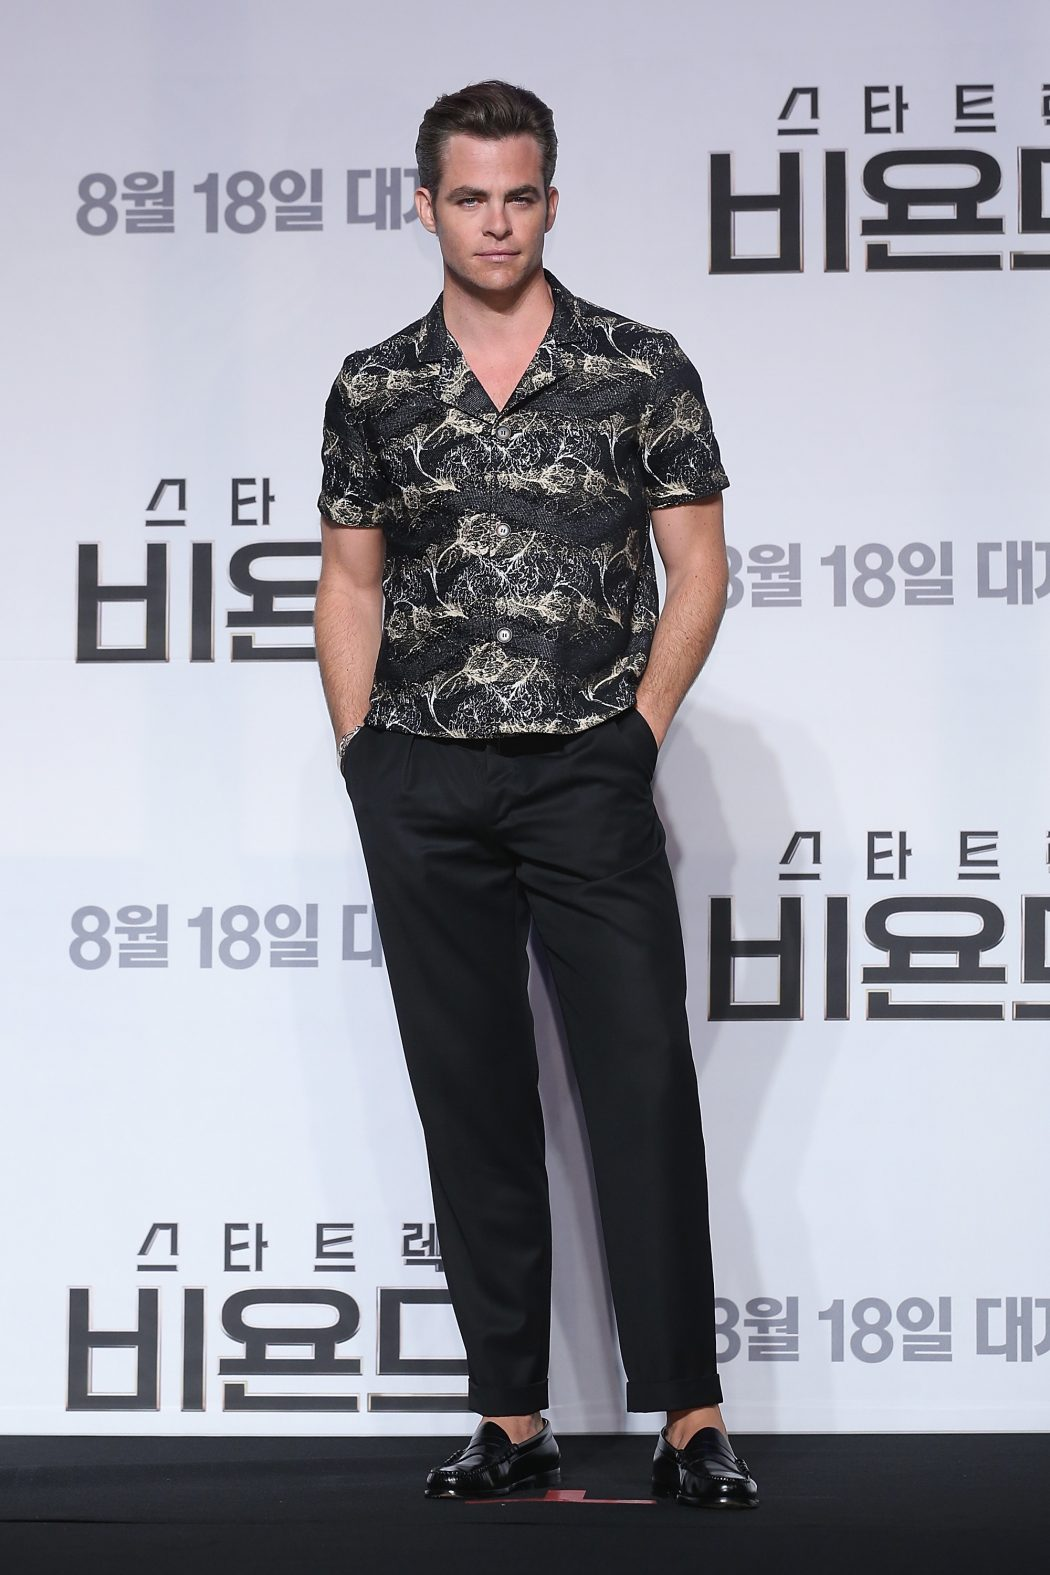 GettyImages-589992886 15 Male Celebrities Fashion Trends for Summer 2018